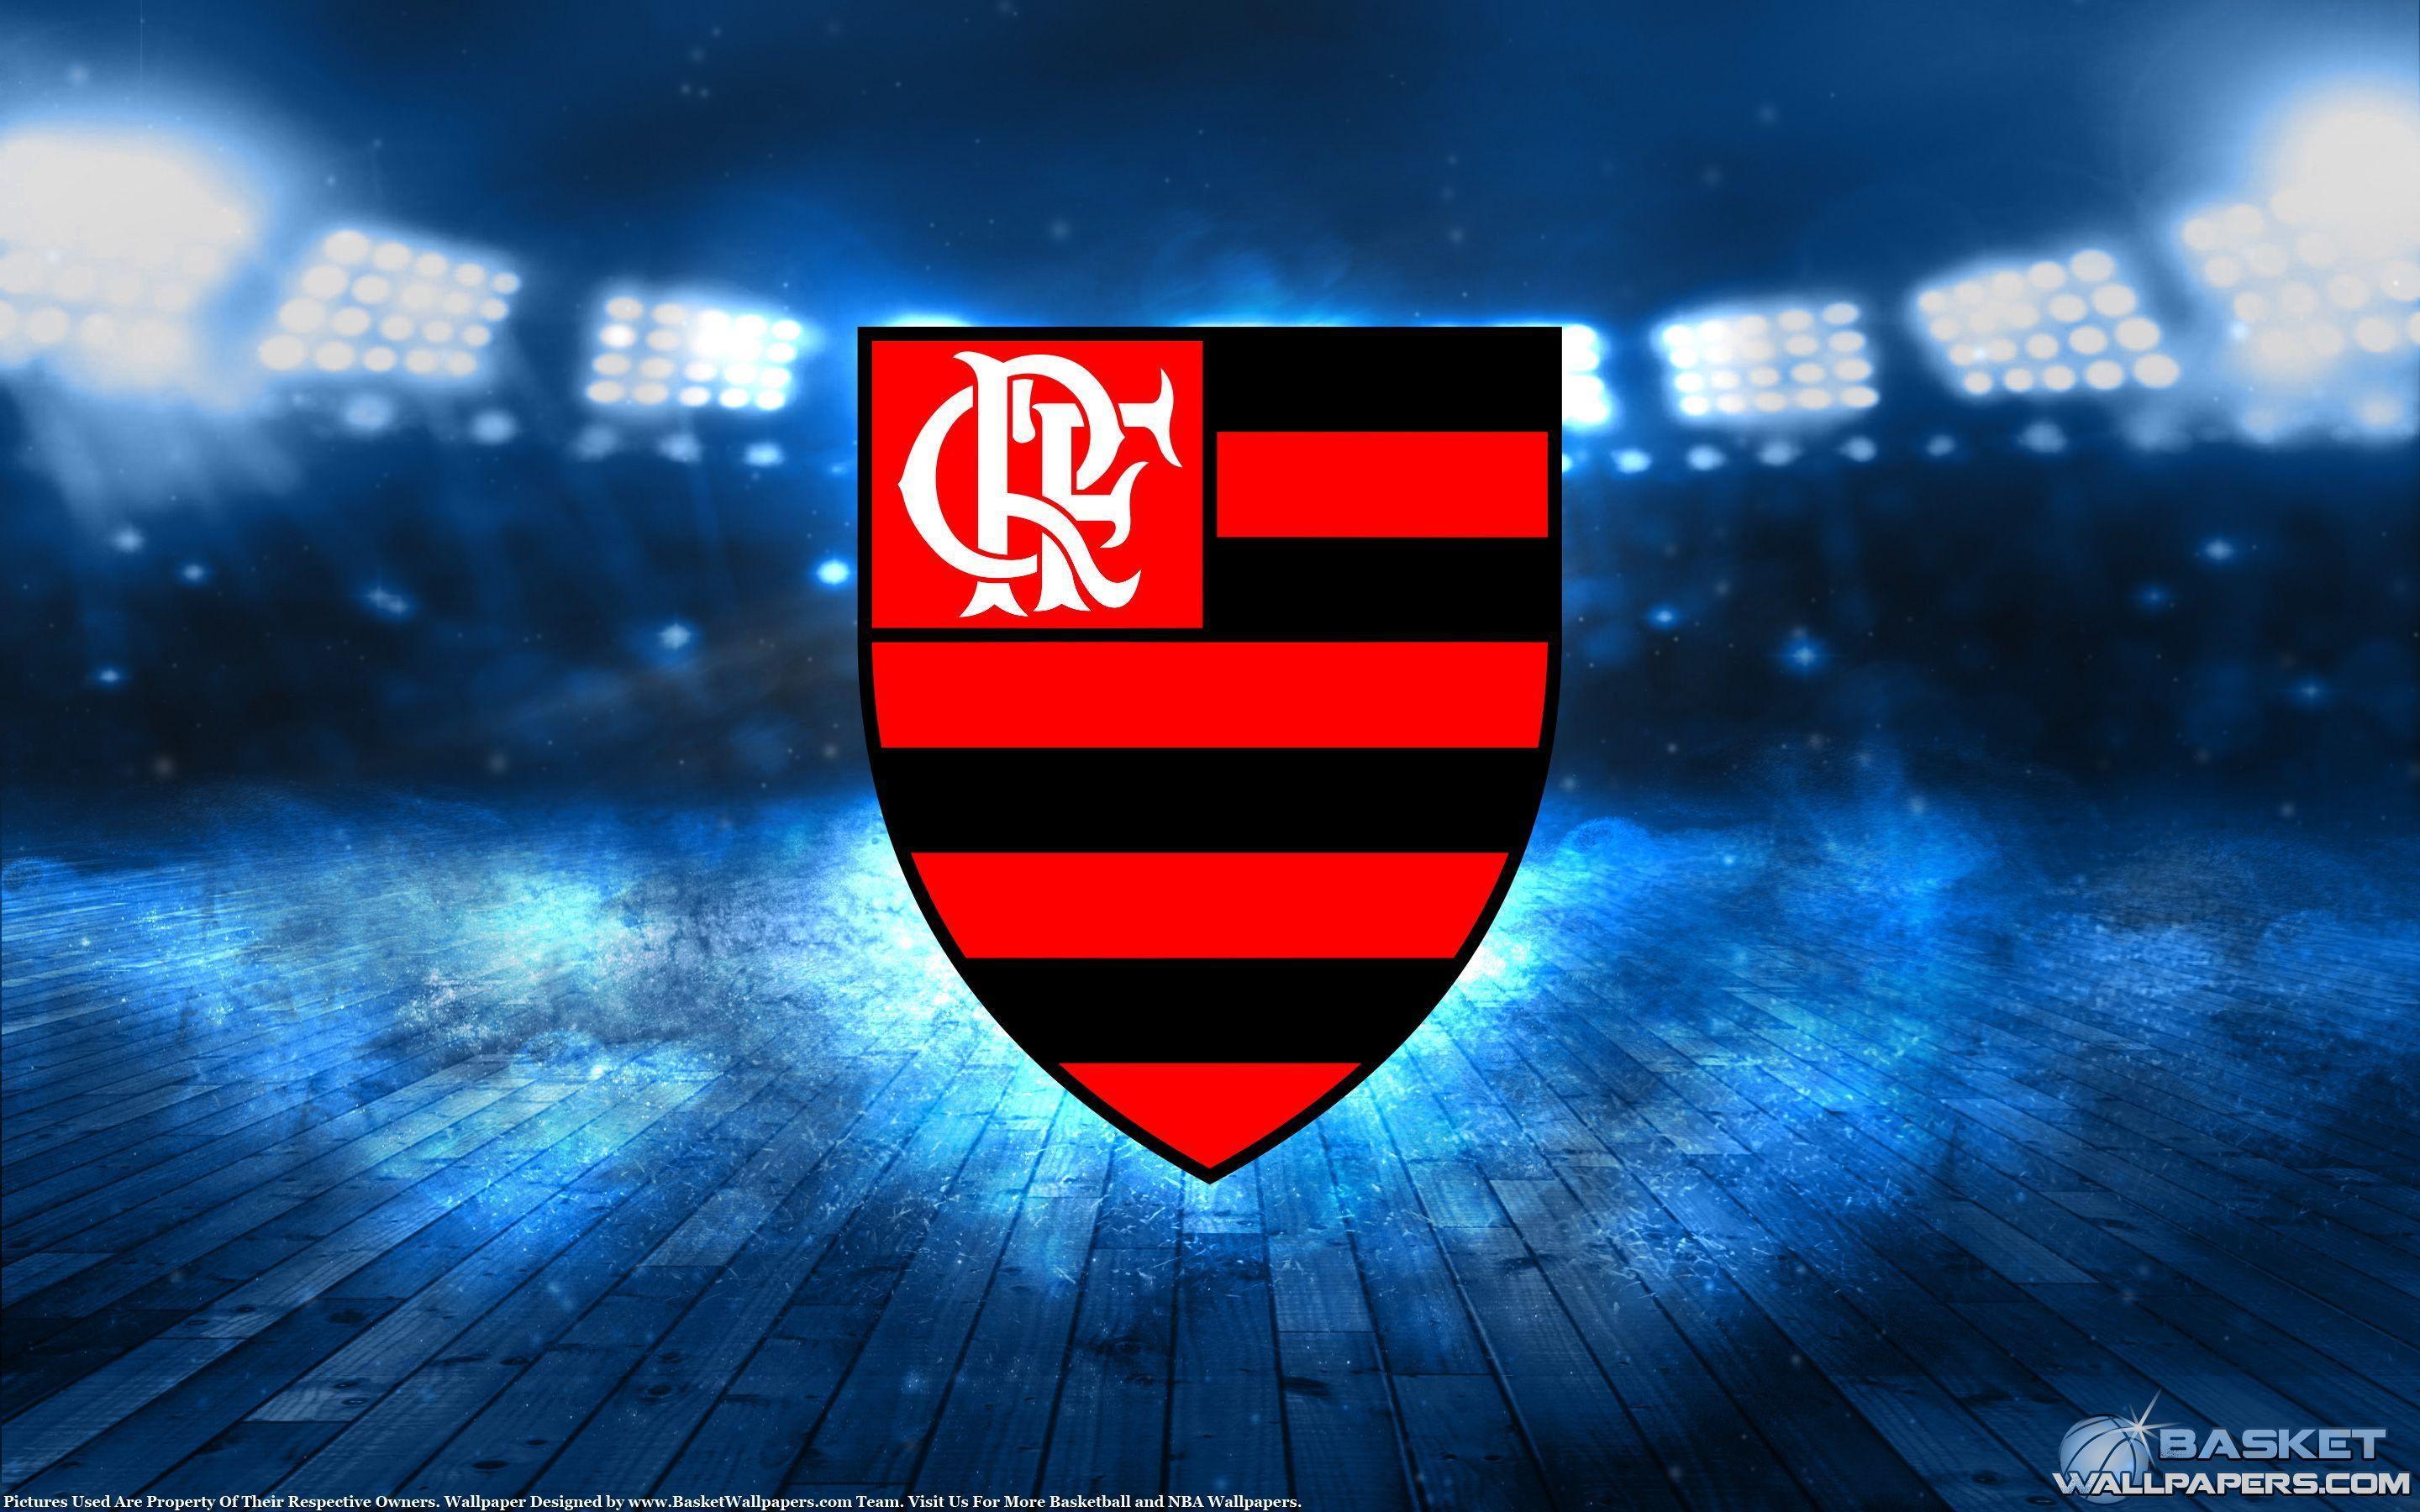 Flamengo Basketball 2015 Champions Wallpapers